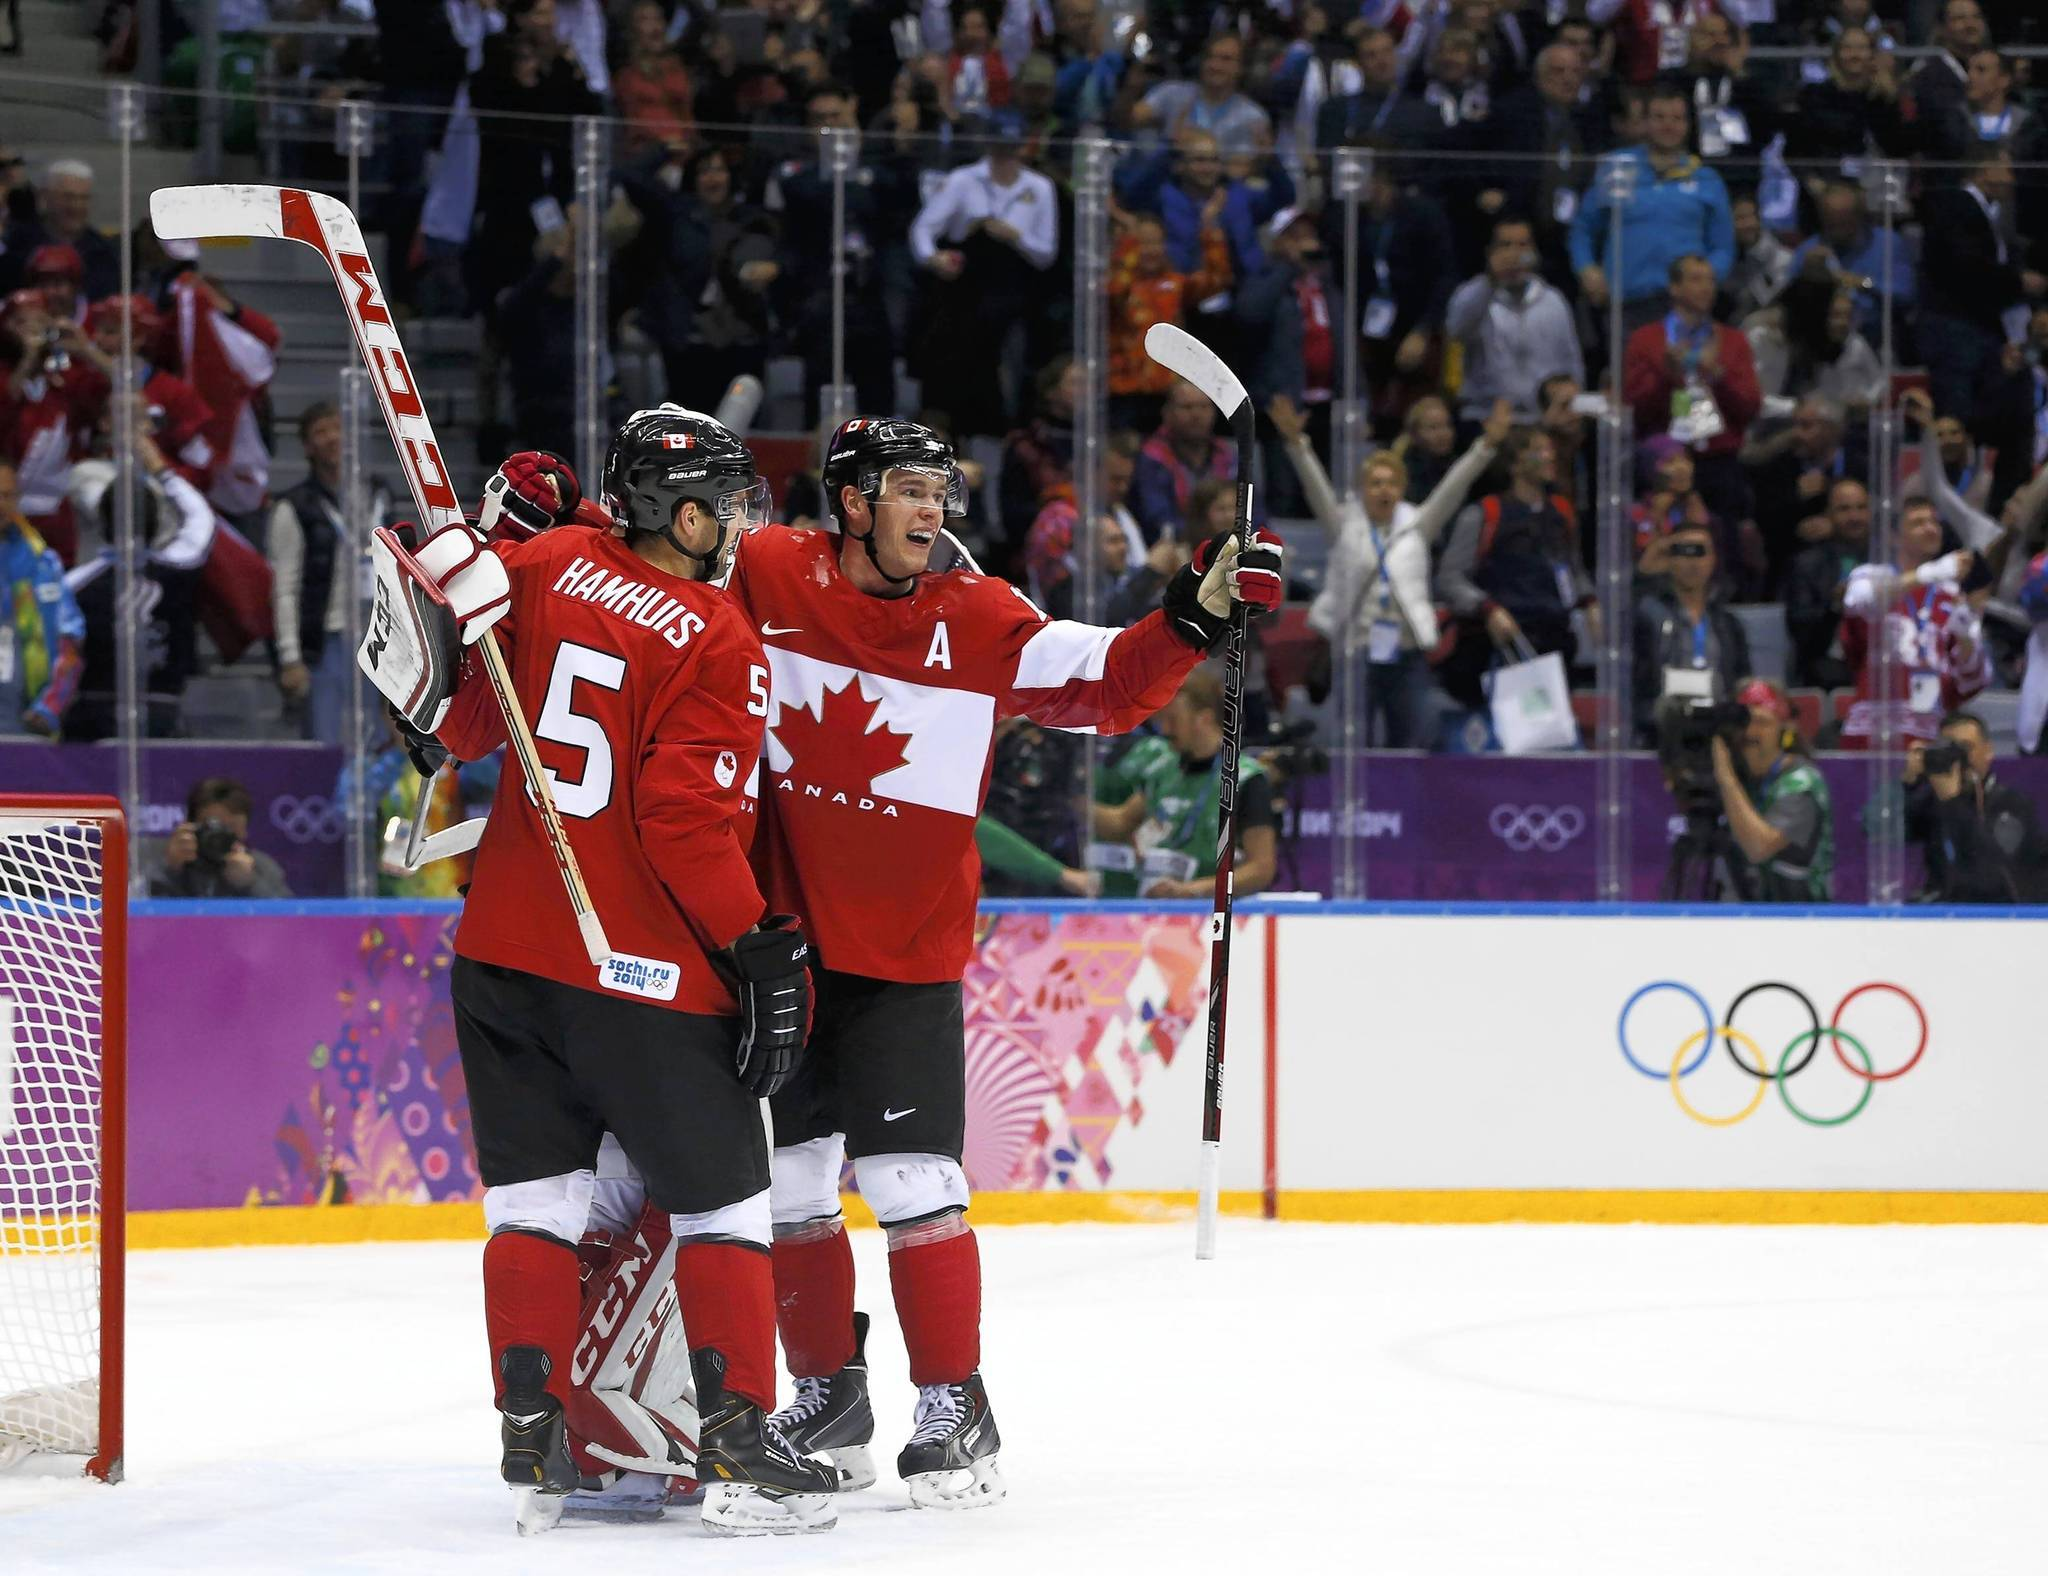 Photos: Canada vs. Sweden gold medal hockey - Canada vs Sweden Hockey